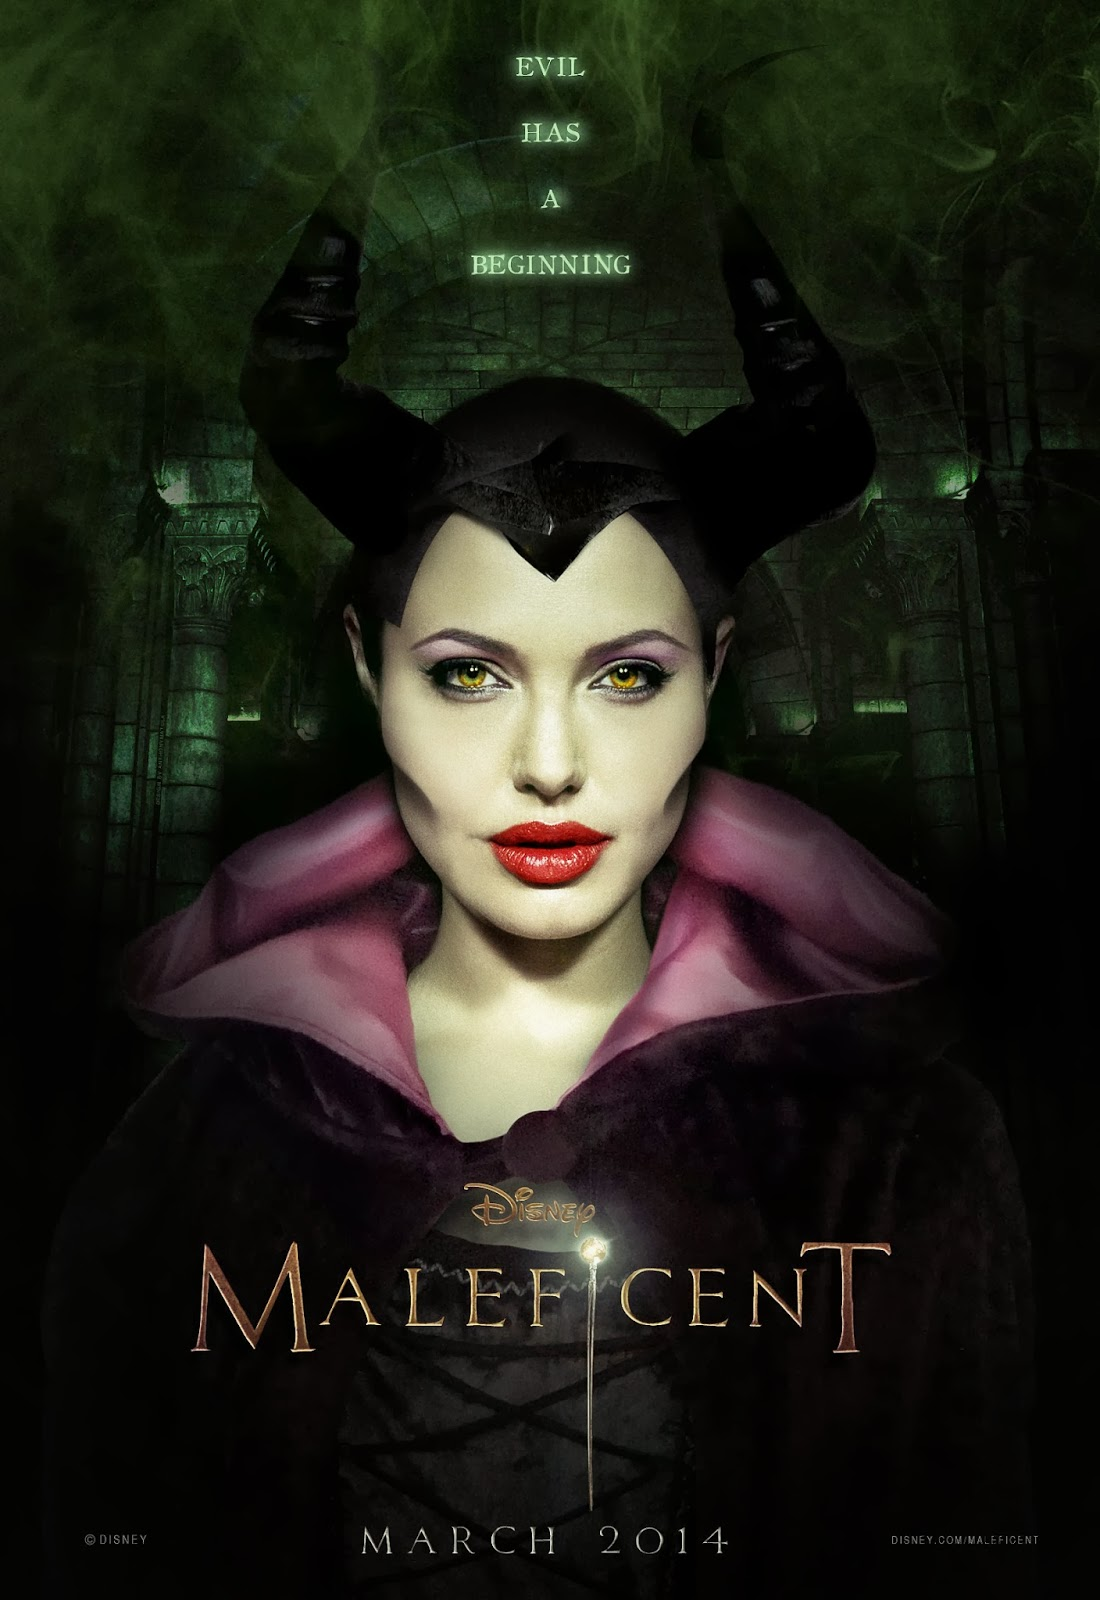 Angelina jolie is not a wicked witch according to angelina jolie